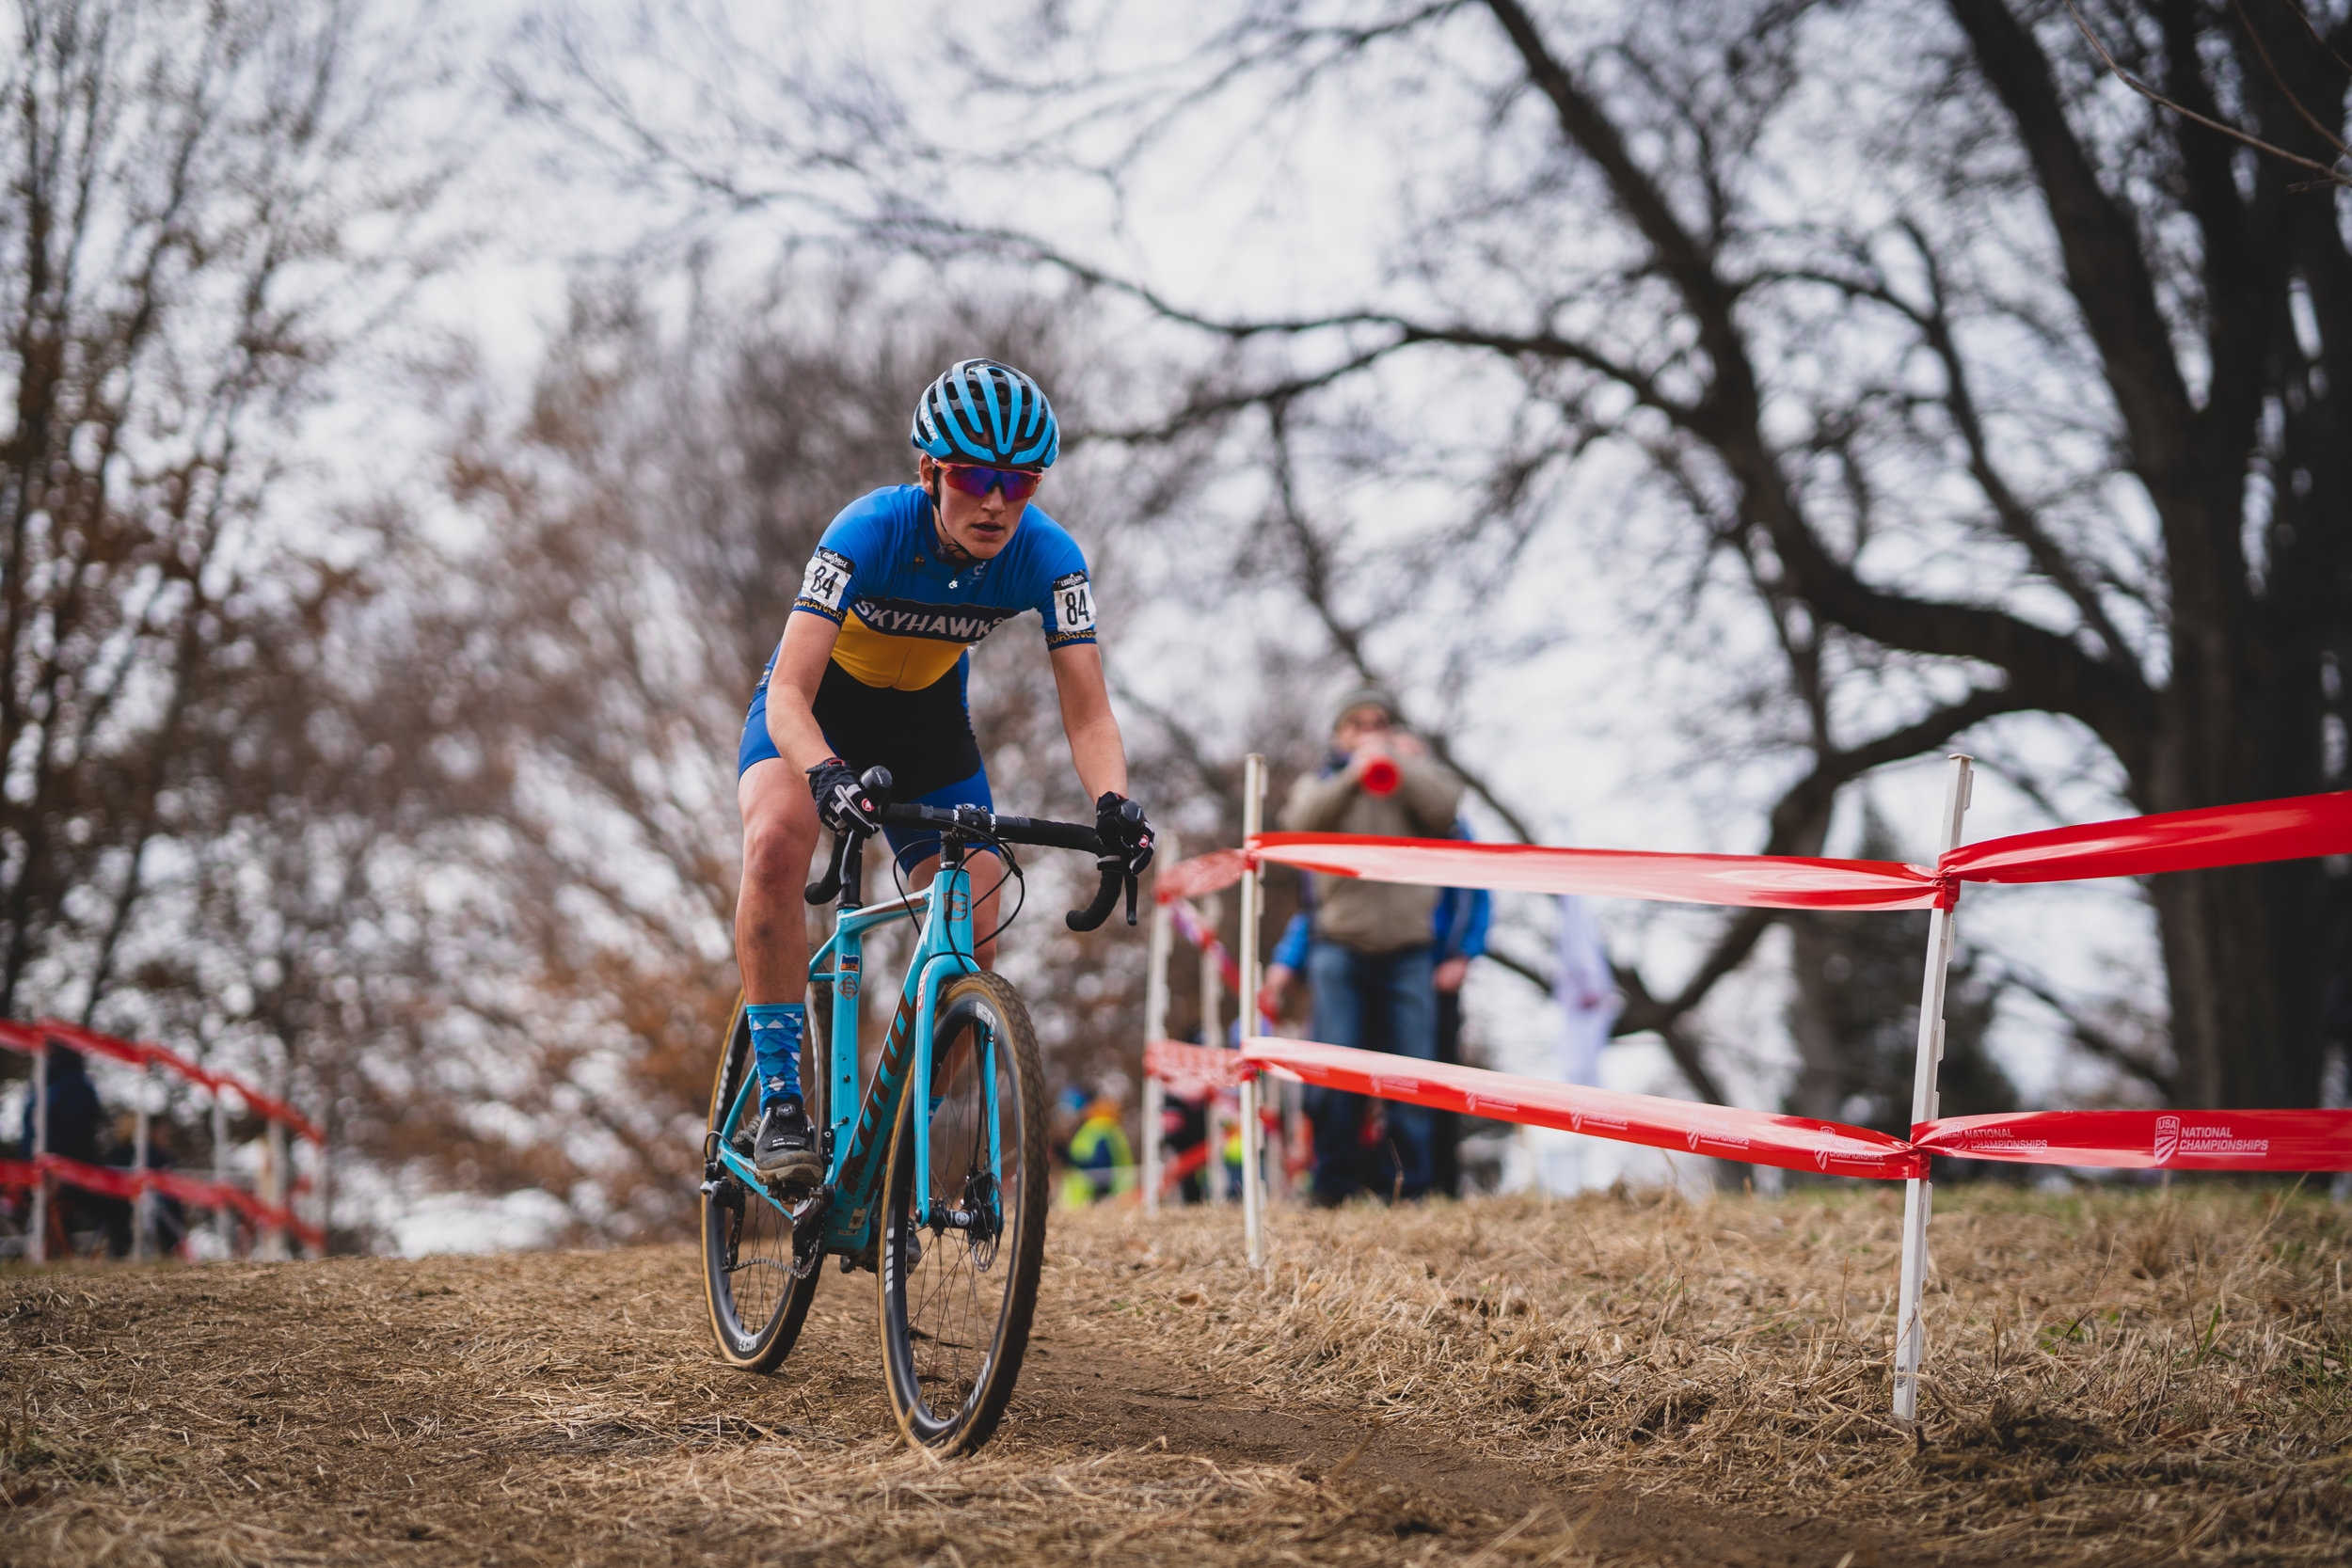 Sophie rode to an awesome 4th place finish in Thursday's Collegiate Varsity event. Conditions were very different by Sunday's U23 race….